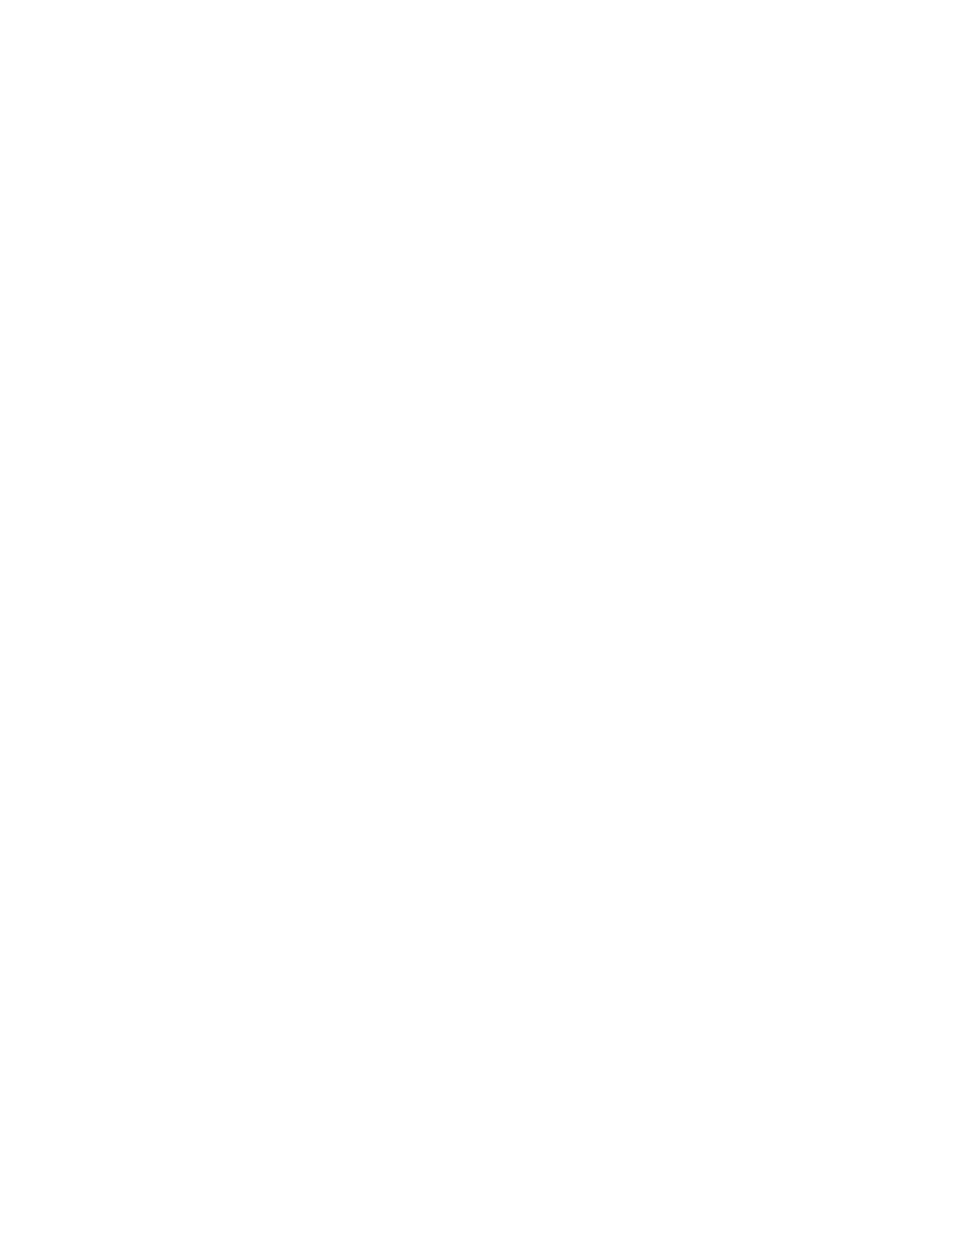 Associated Equipment 6366 User Manual | Page 3 / 6